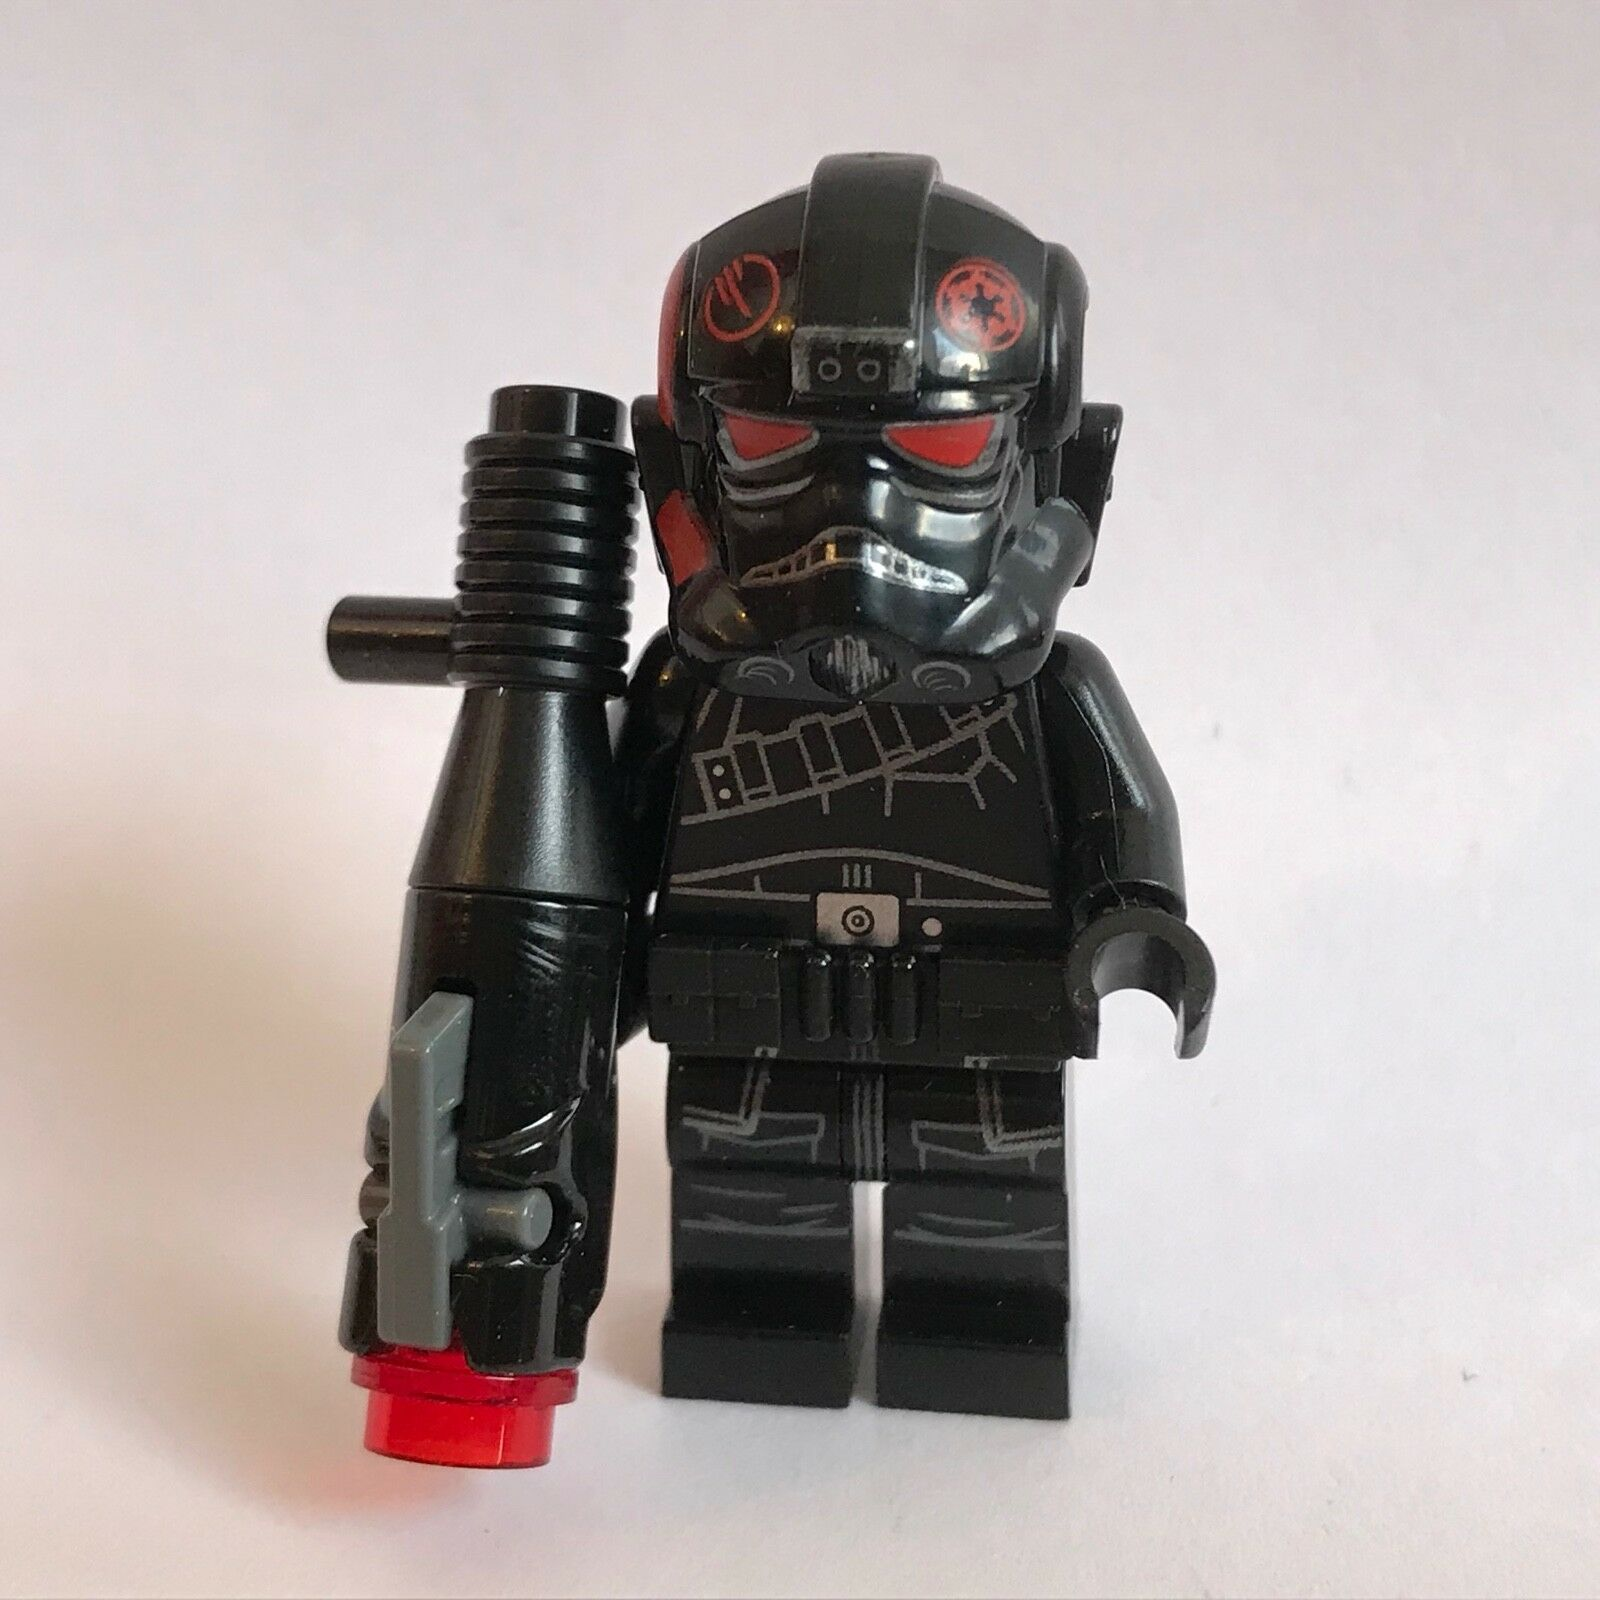 Lego Star Wars Inferno Squad Trooper minifigure from set 75226 Sunken Eyes